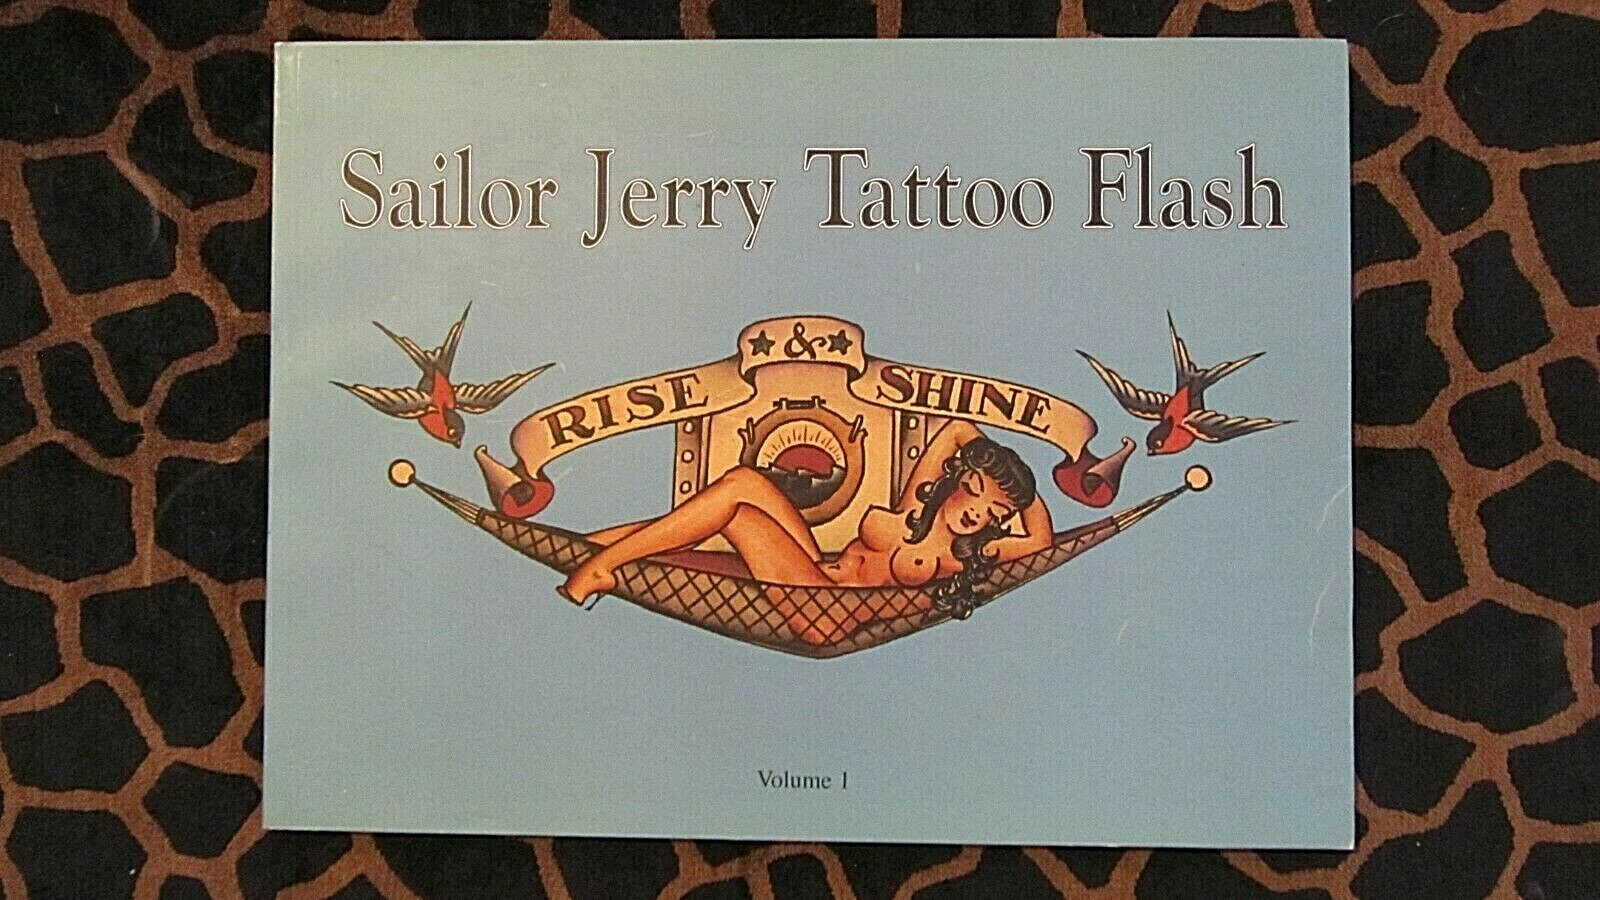 Sailor Jerry Tattoo Flash Vol.1 for